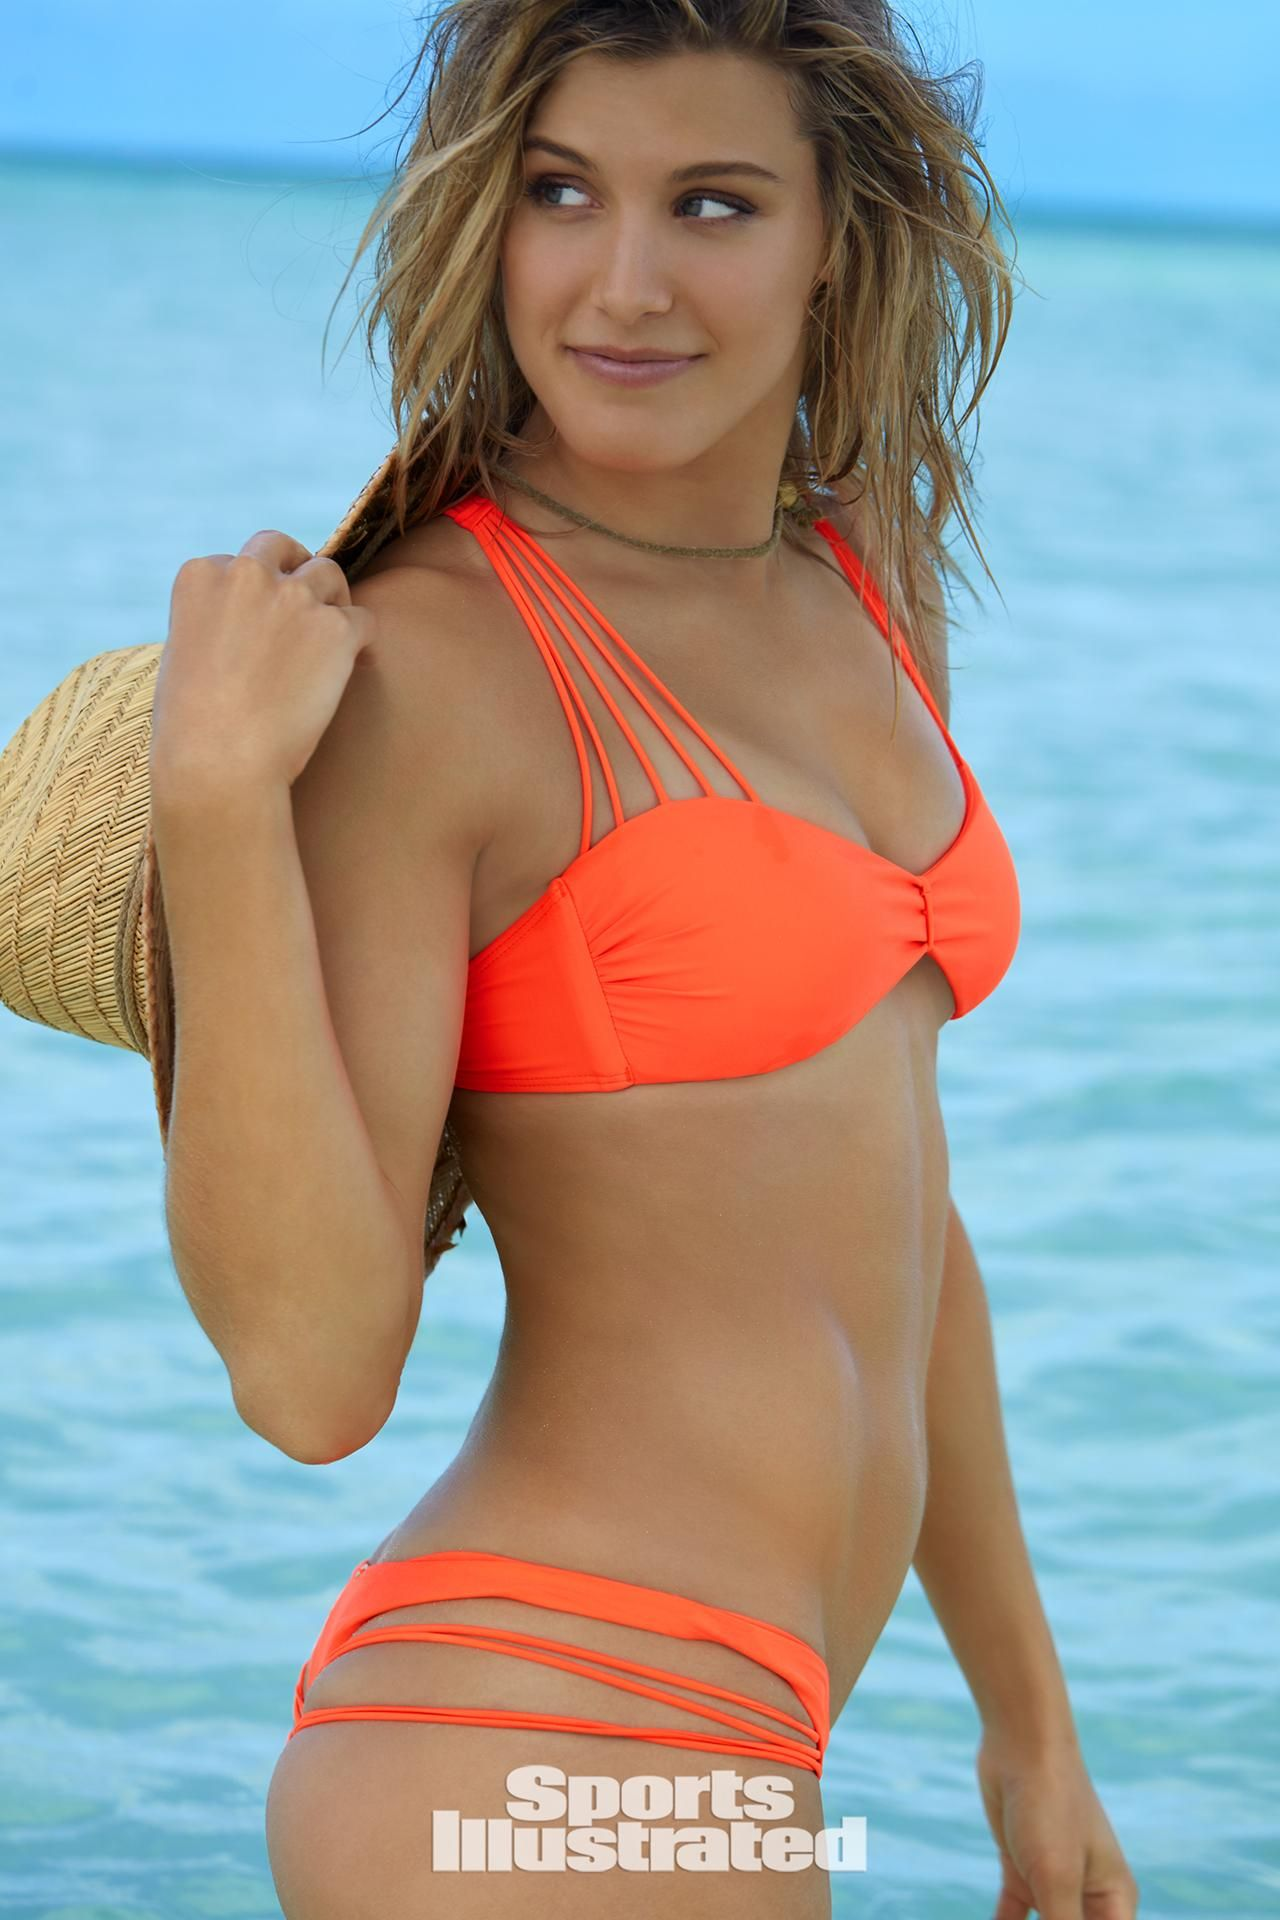 Sports Illustrated Swimsuit Issue 2017: Genie Bouchard ...